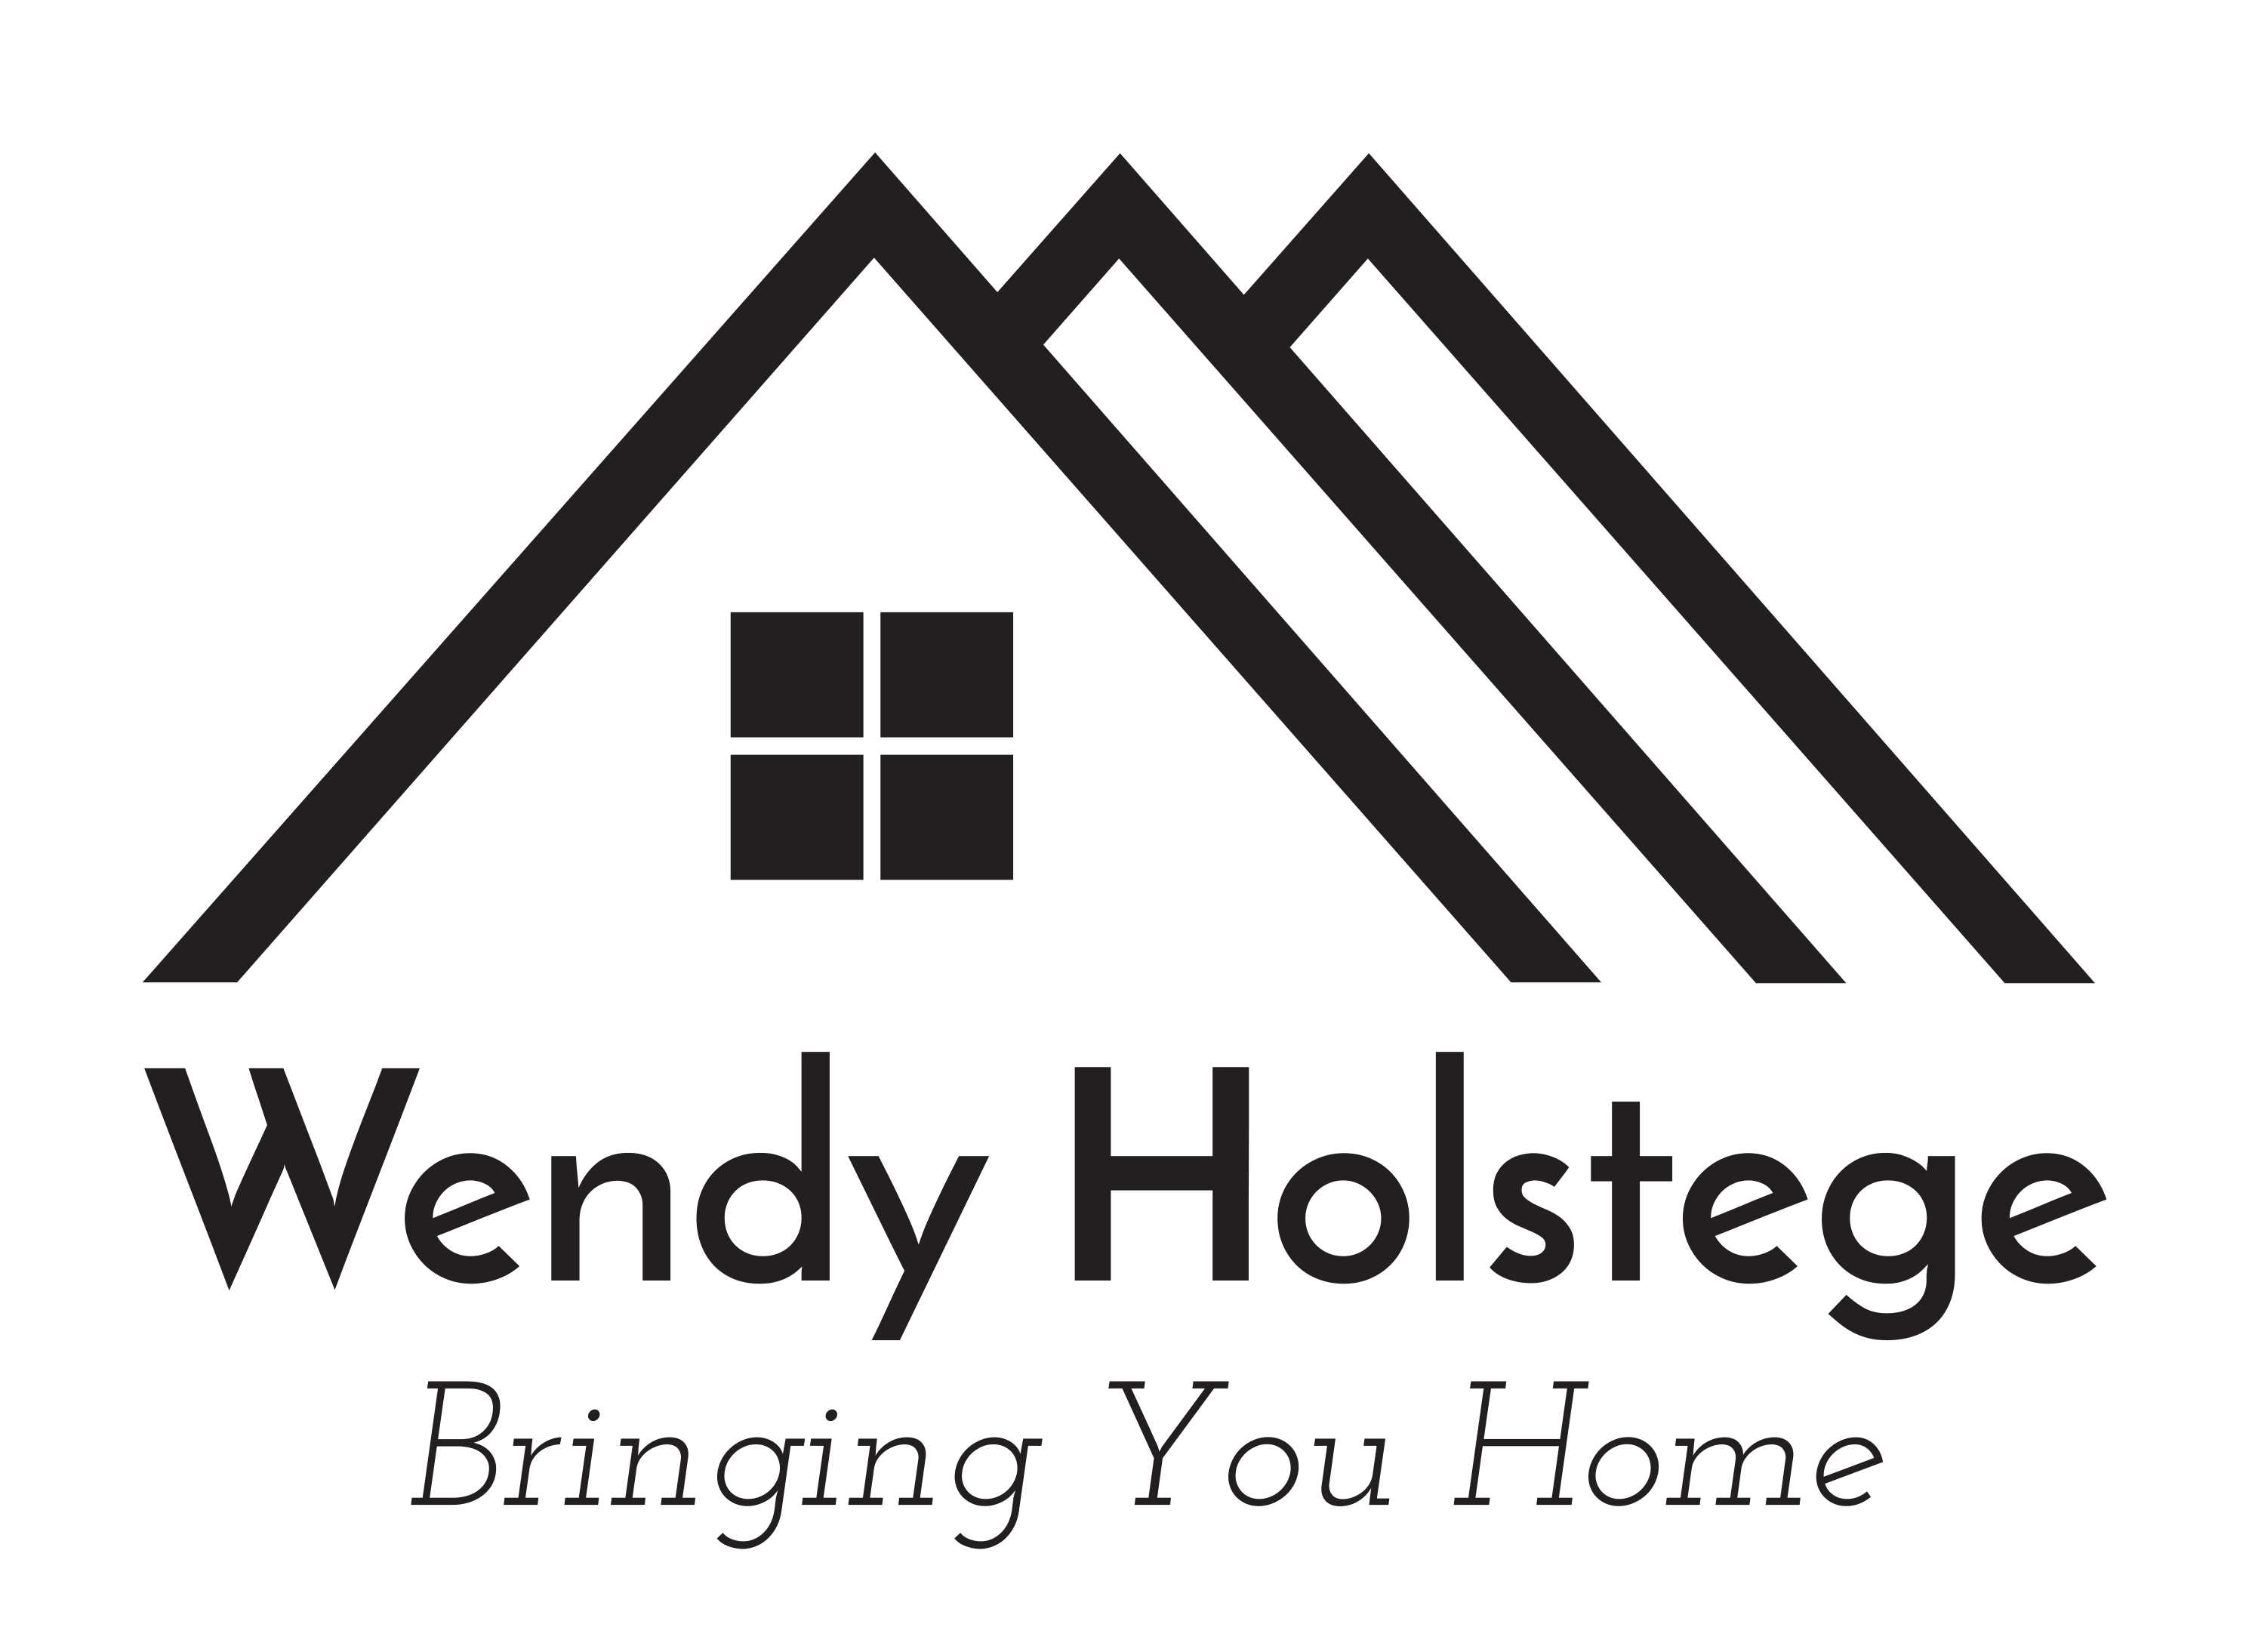 Wendy Holstege